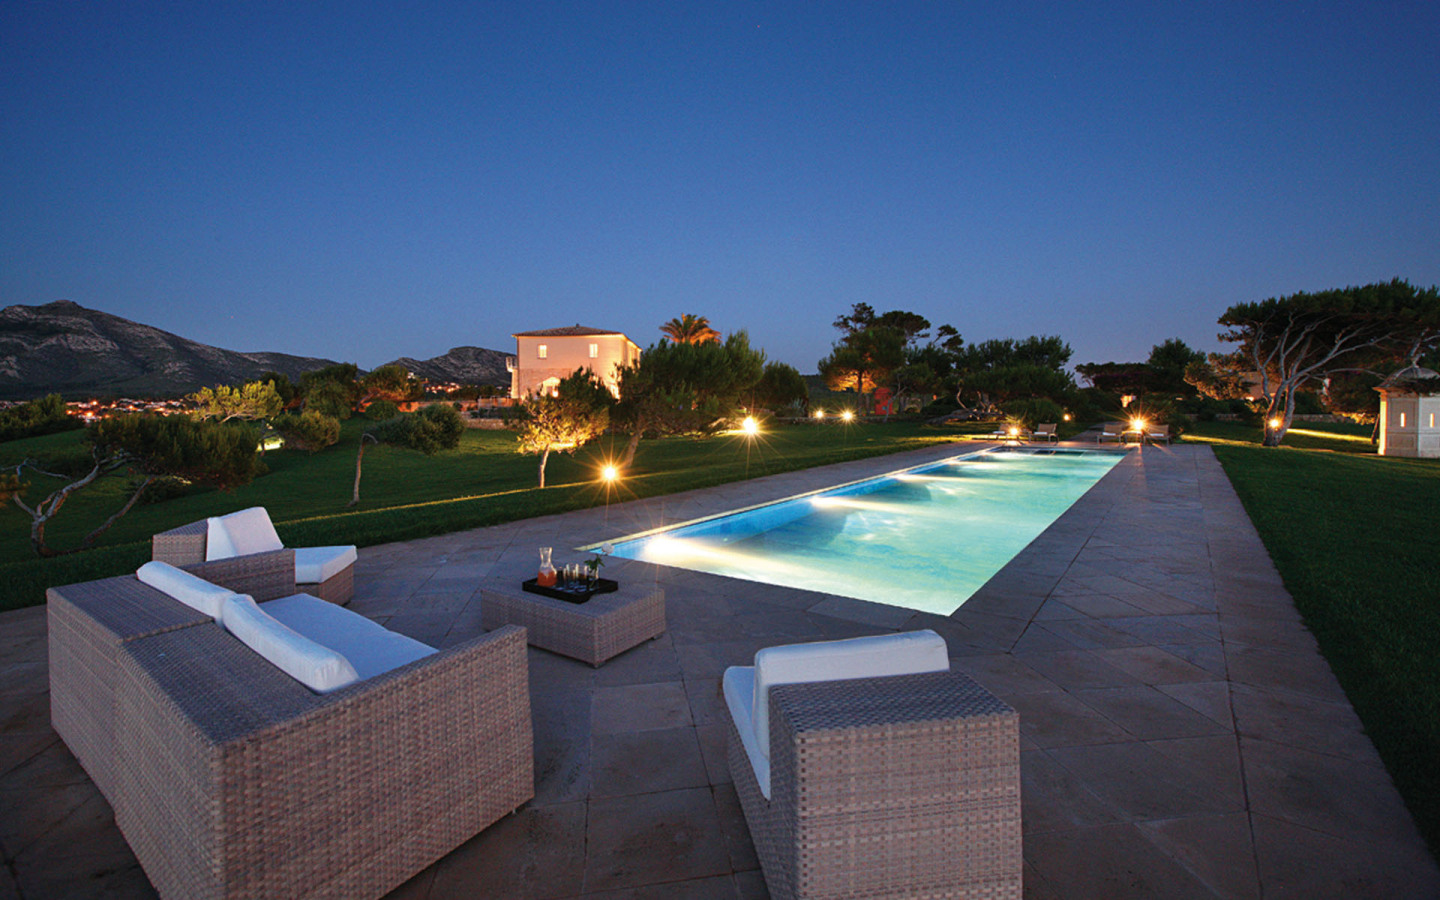 Poolside at Castell de Manresa